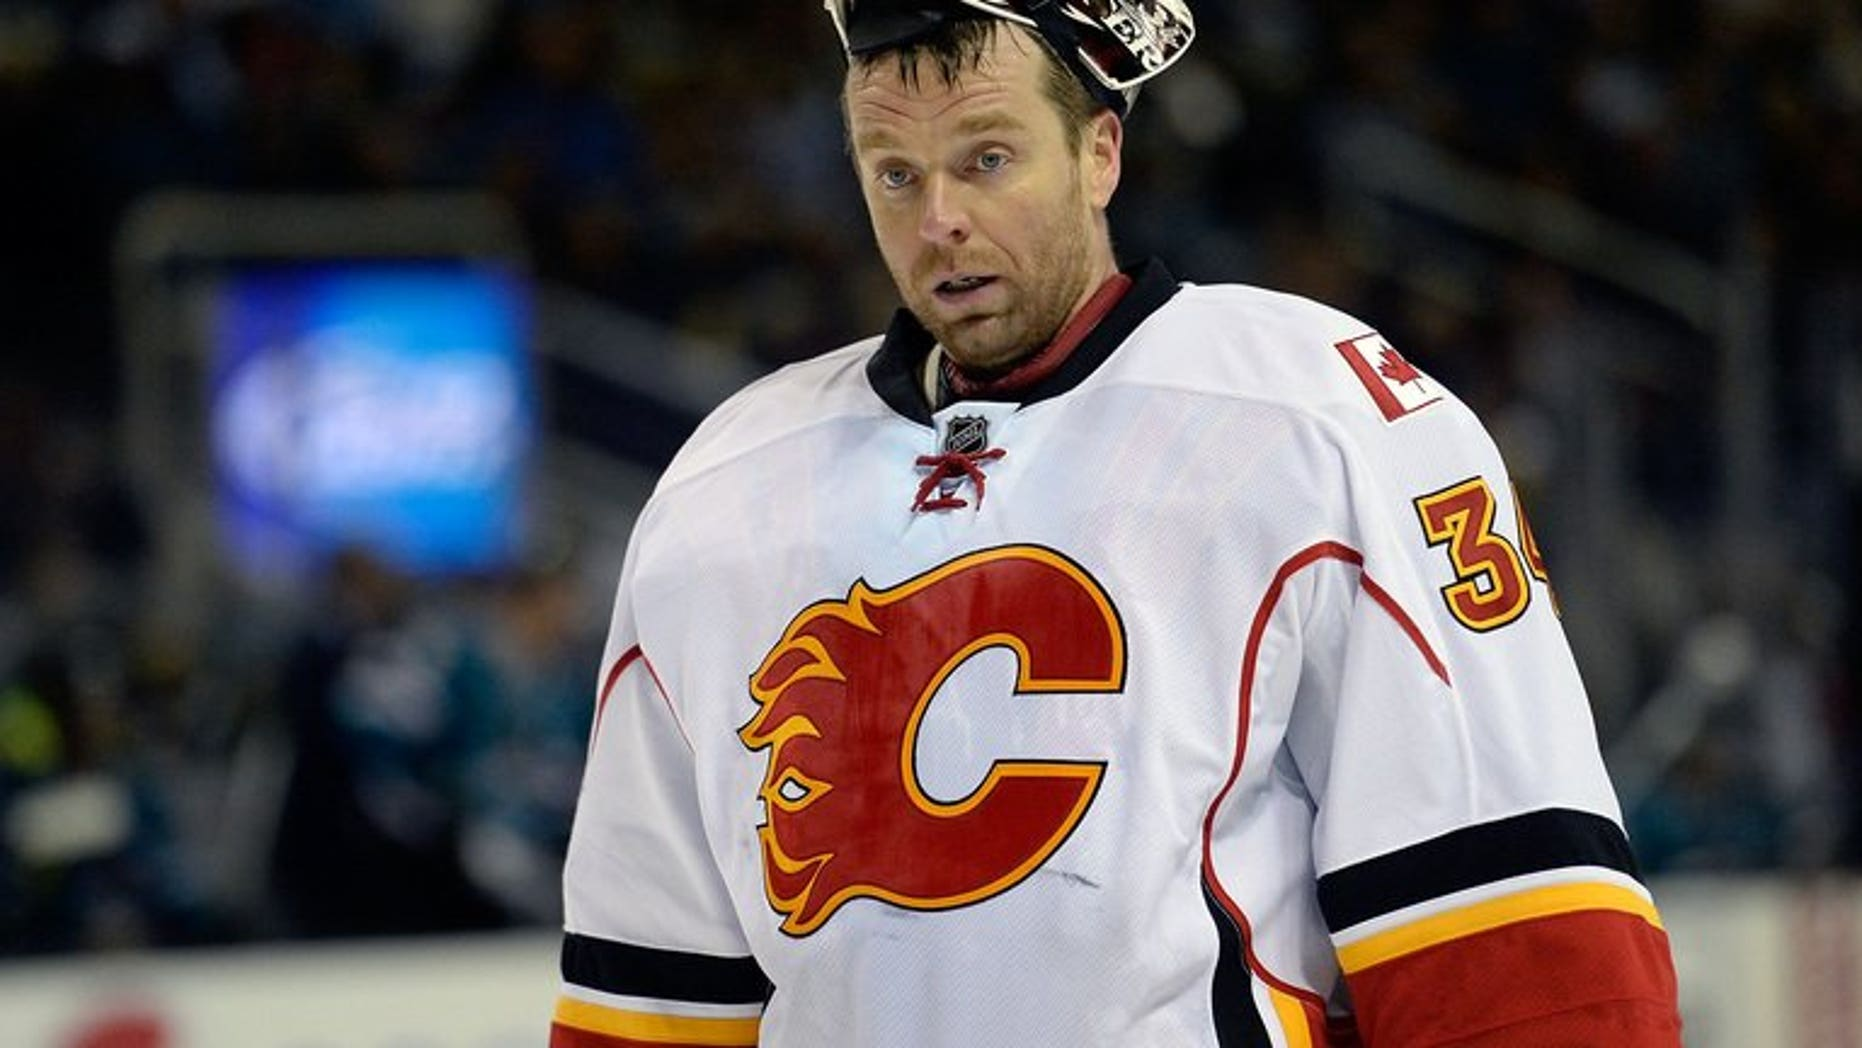 Goalkeeper Miikka Kiprusoff of the Calgary Flames is seen on April 5, 2013 in San Jose, California. Kiprusoff, who won the Vezina Trophy in 2006 as the league's top goaltender, announced Monday he is retiring after a stellar 12-year NHL career.